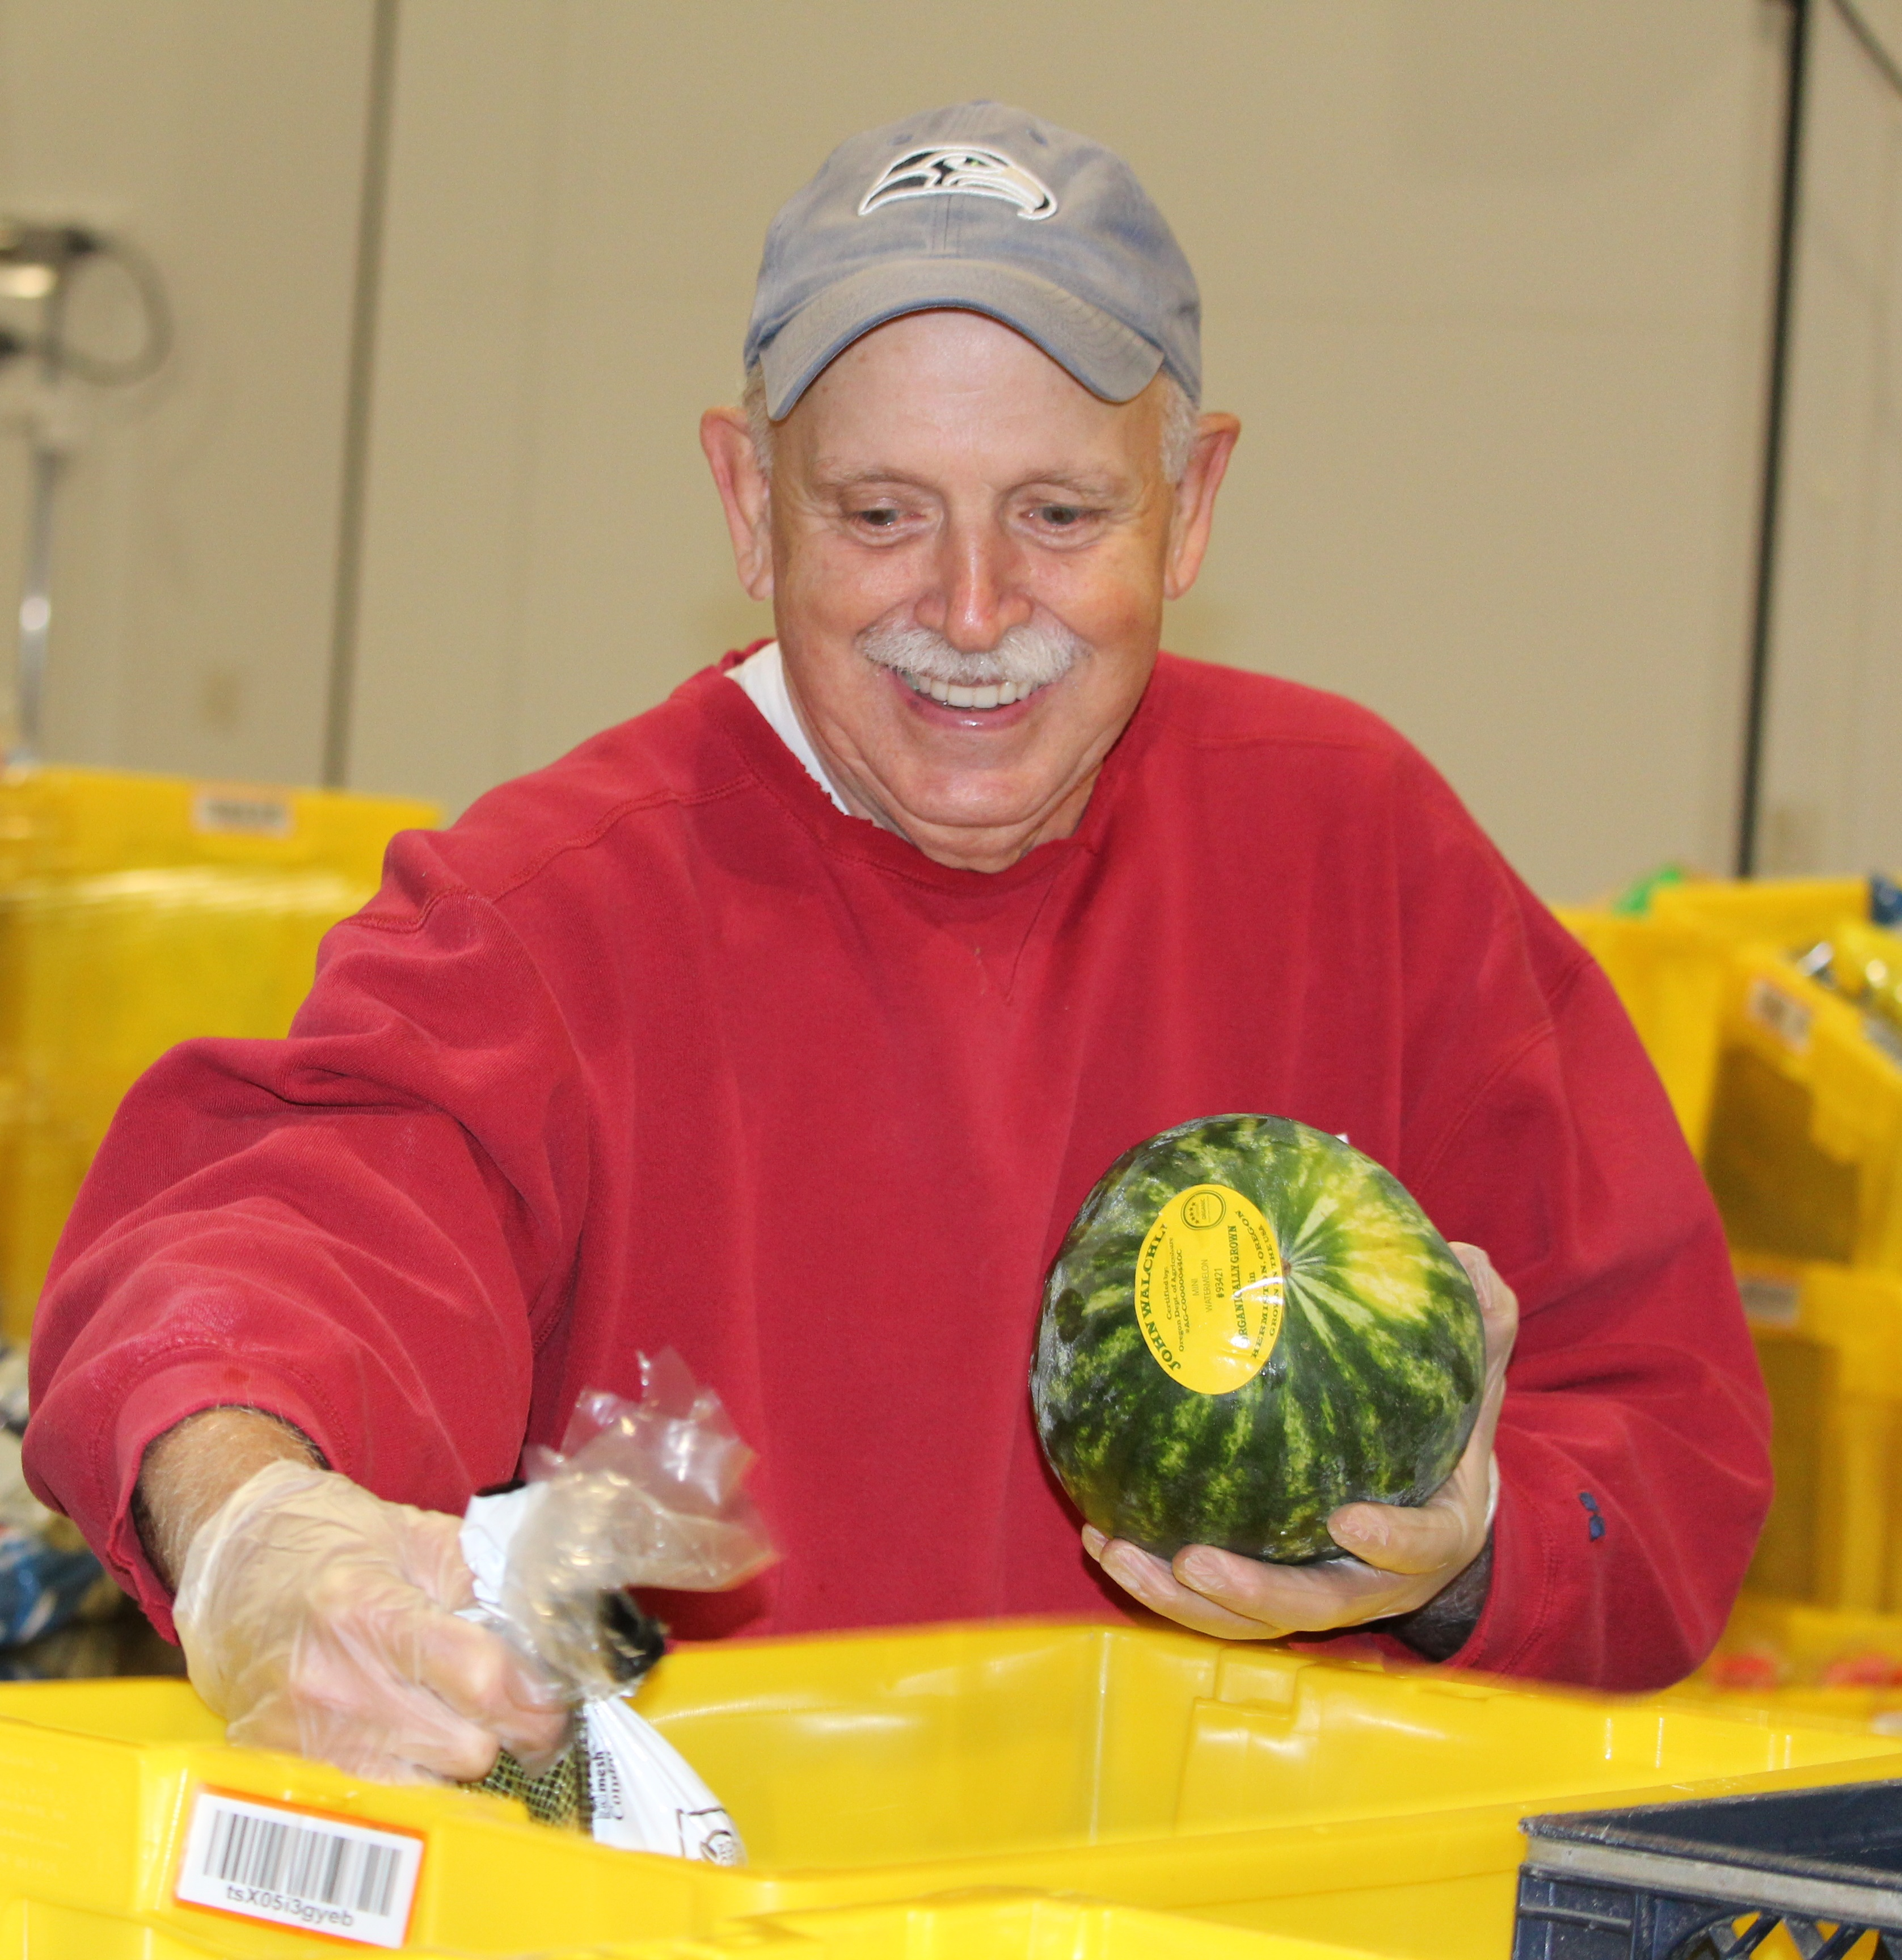 Smiling volunteer holding a watermelon